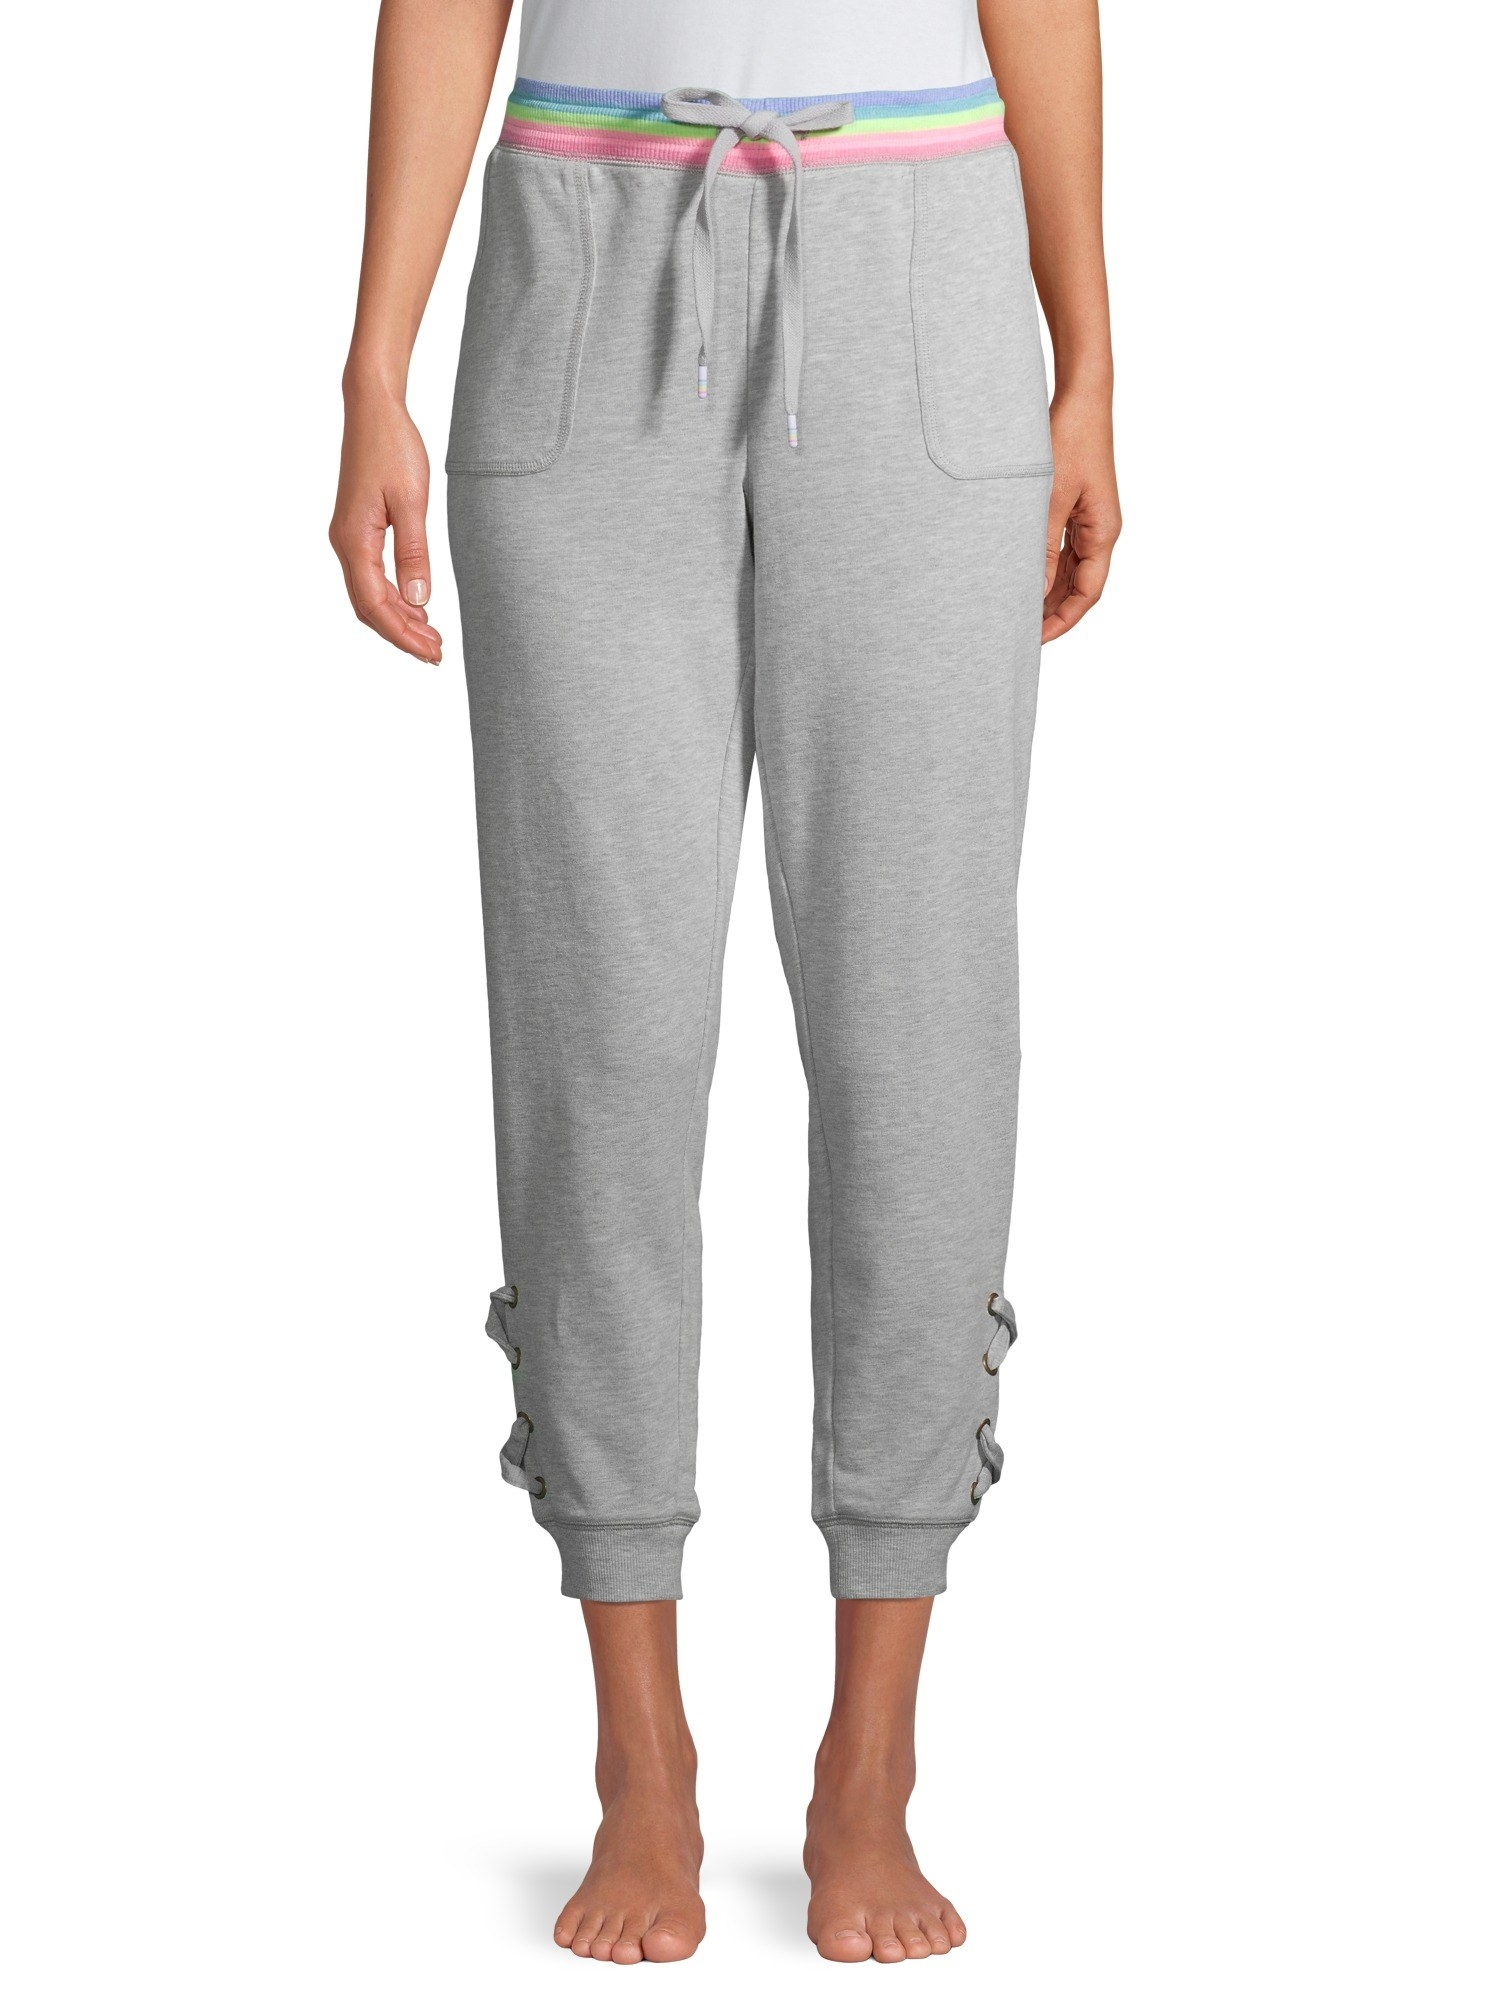 The grey sweatpants with lace-up cuffs and rainbow waistband